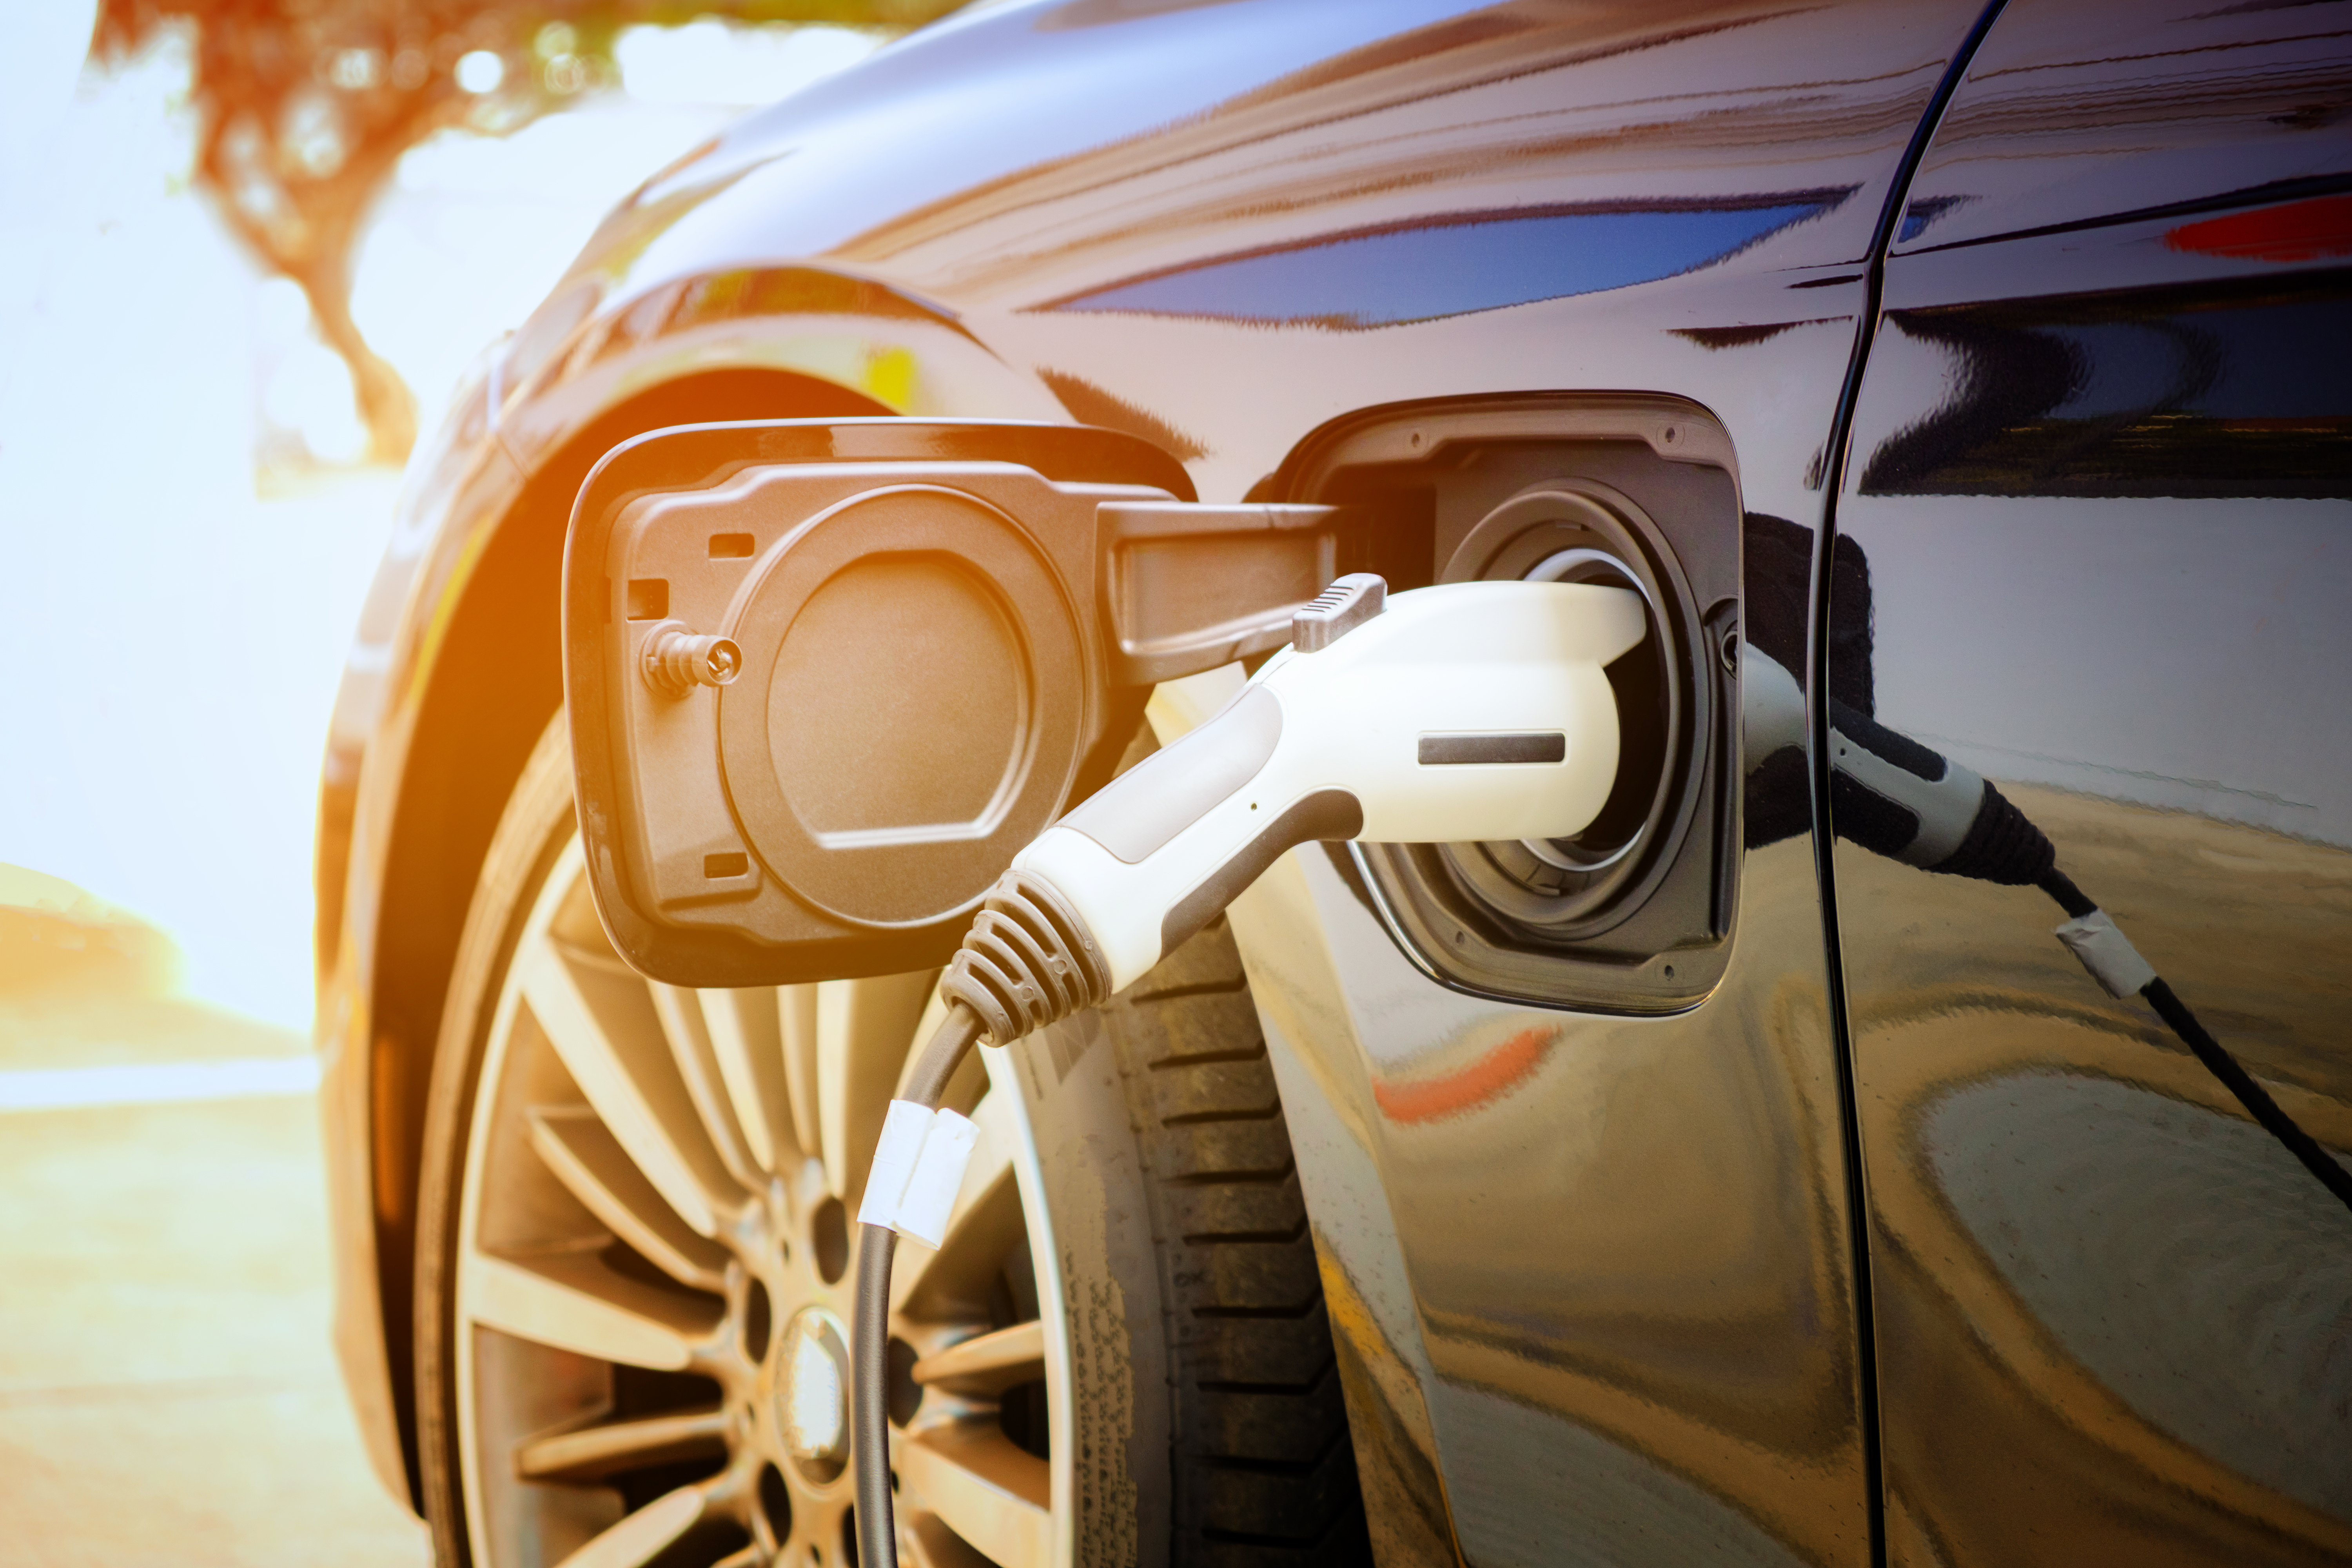 Electric cars to keep the power grid up in an outage? It's possible.